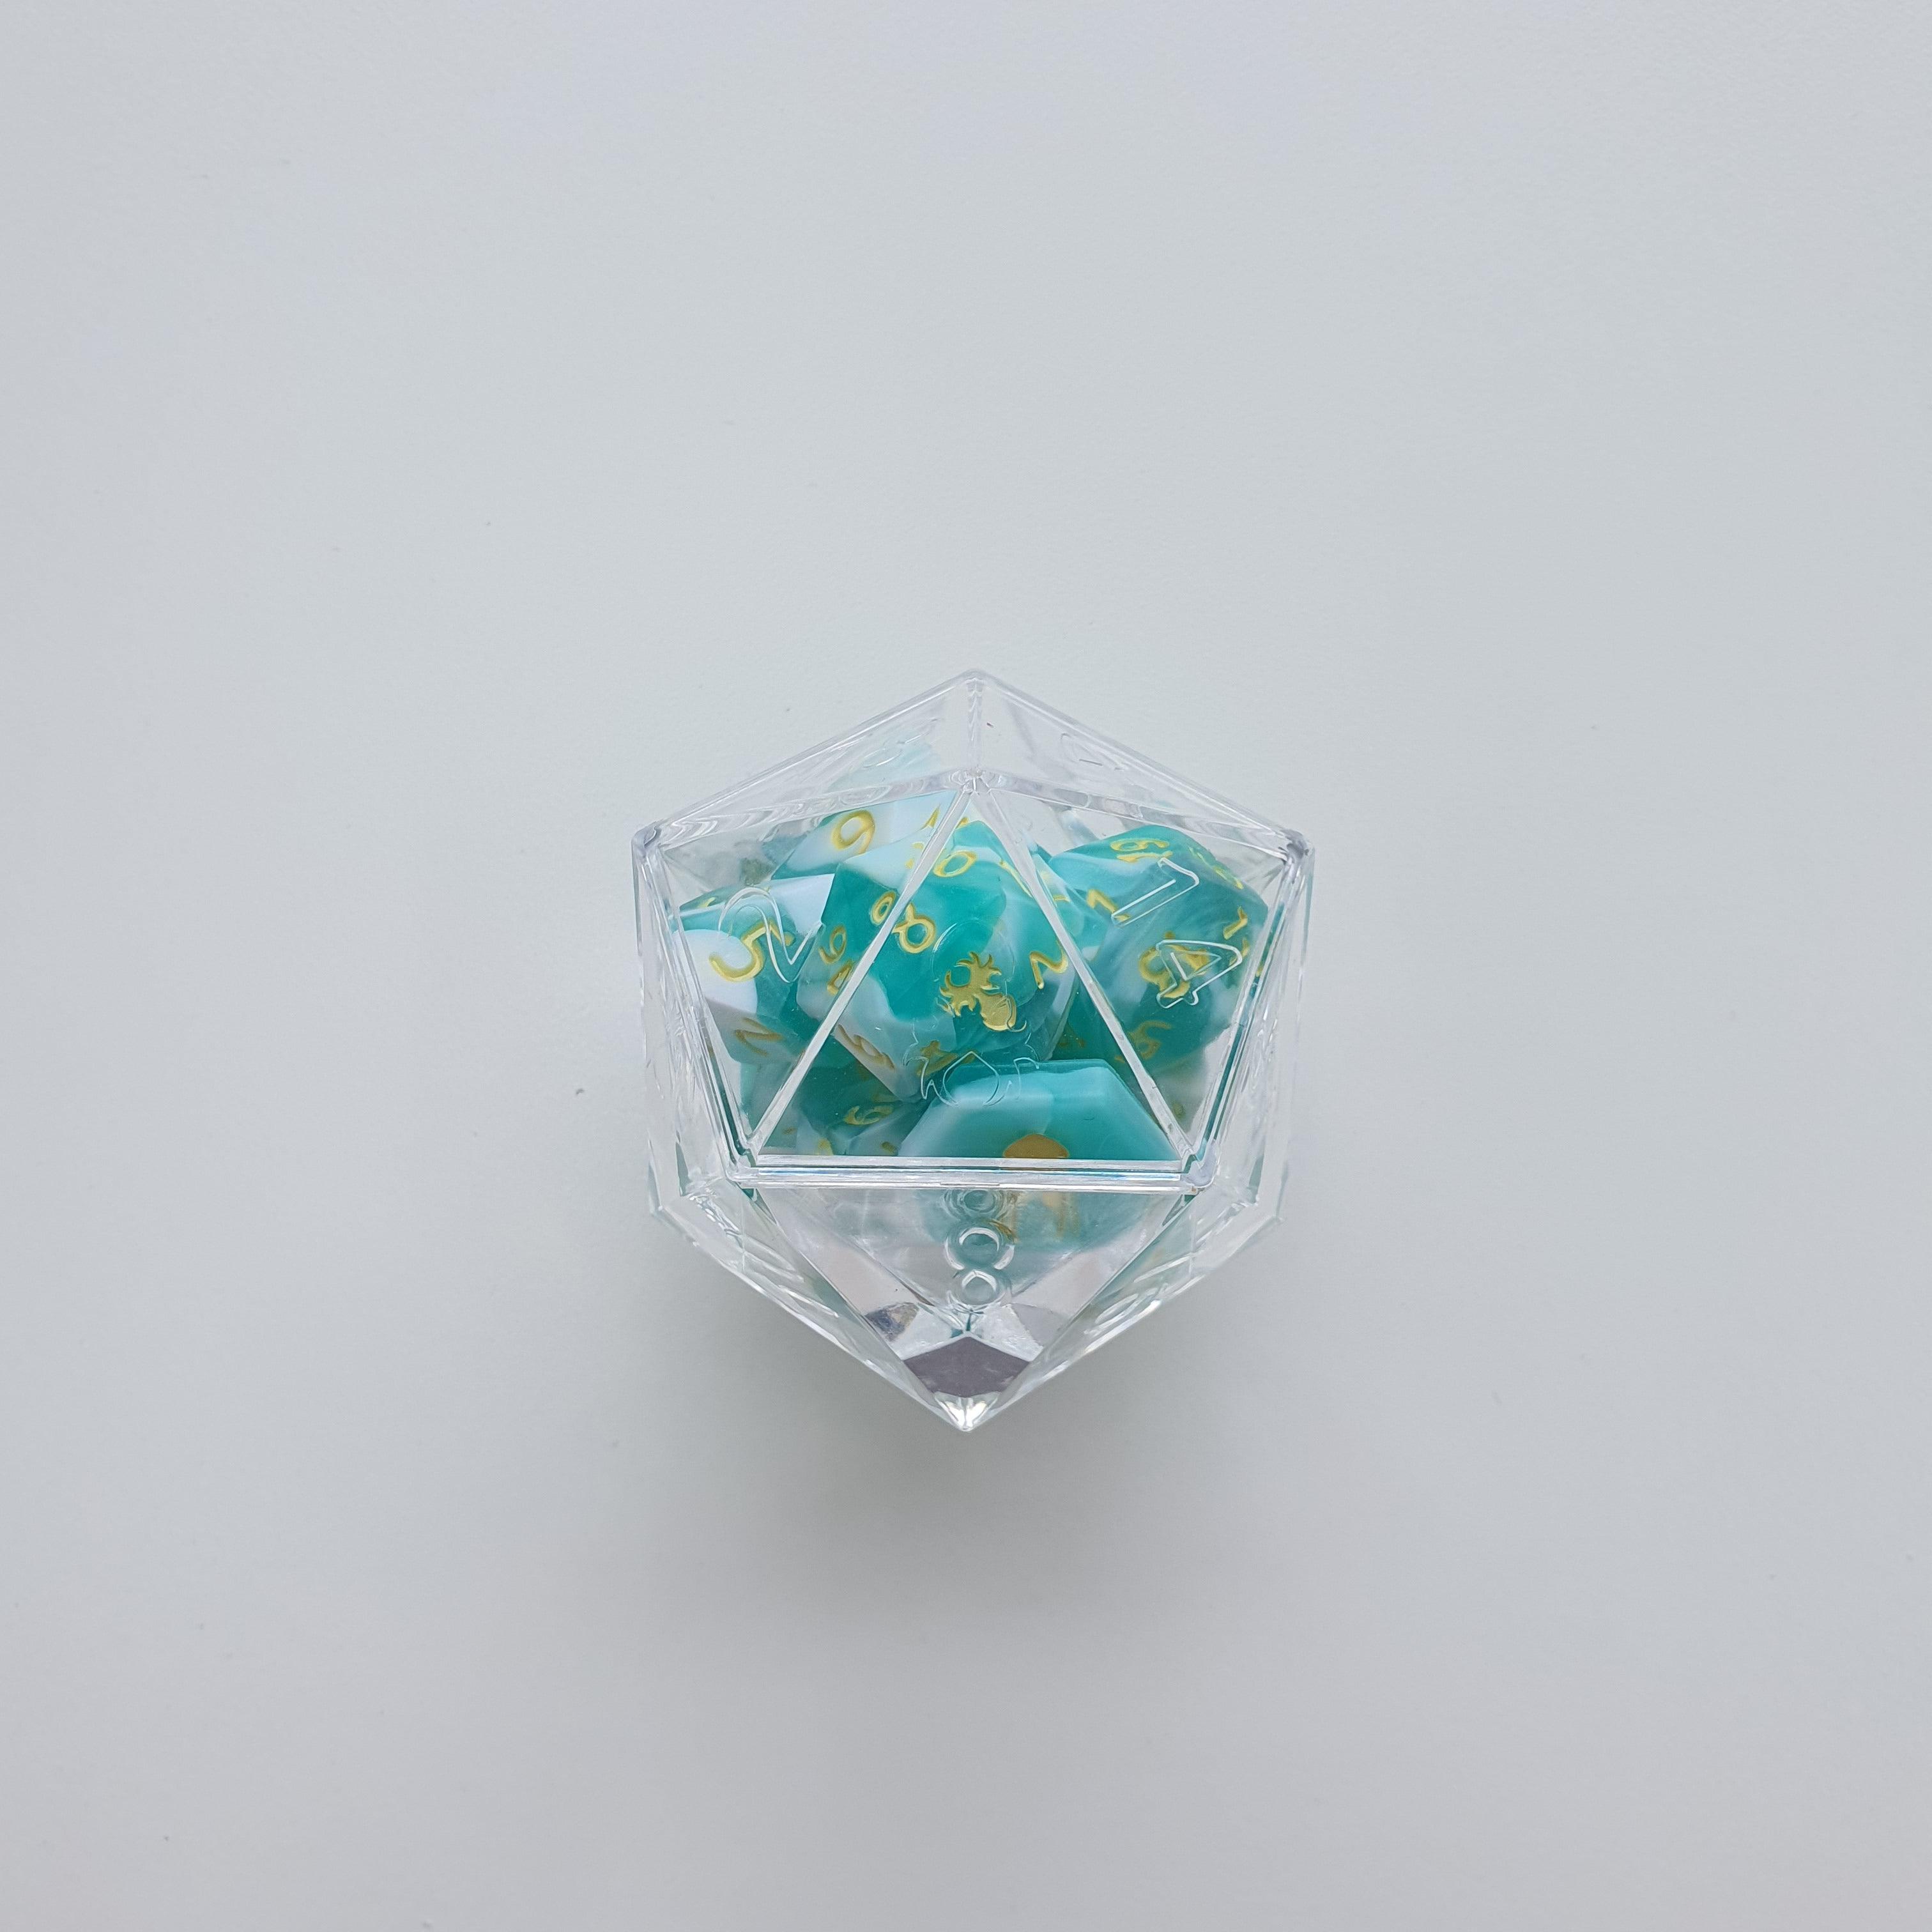 RAW 12pc Teal and White Gummi Baby Shark Do Do Do Do Polyhedral Dice Set with Custom Ink - Kraken Dice | Sunny Pair'O'Dice